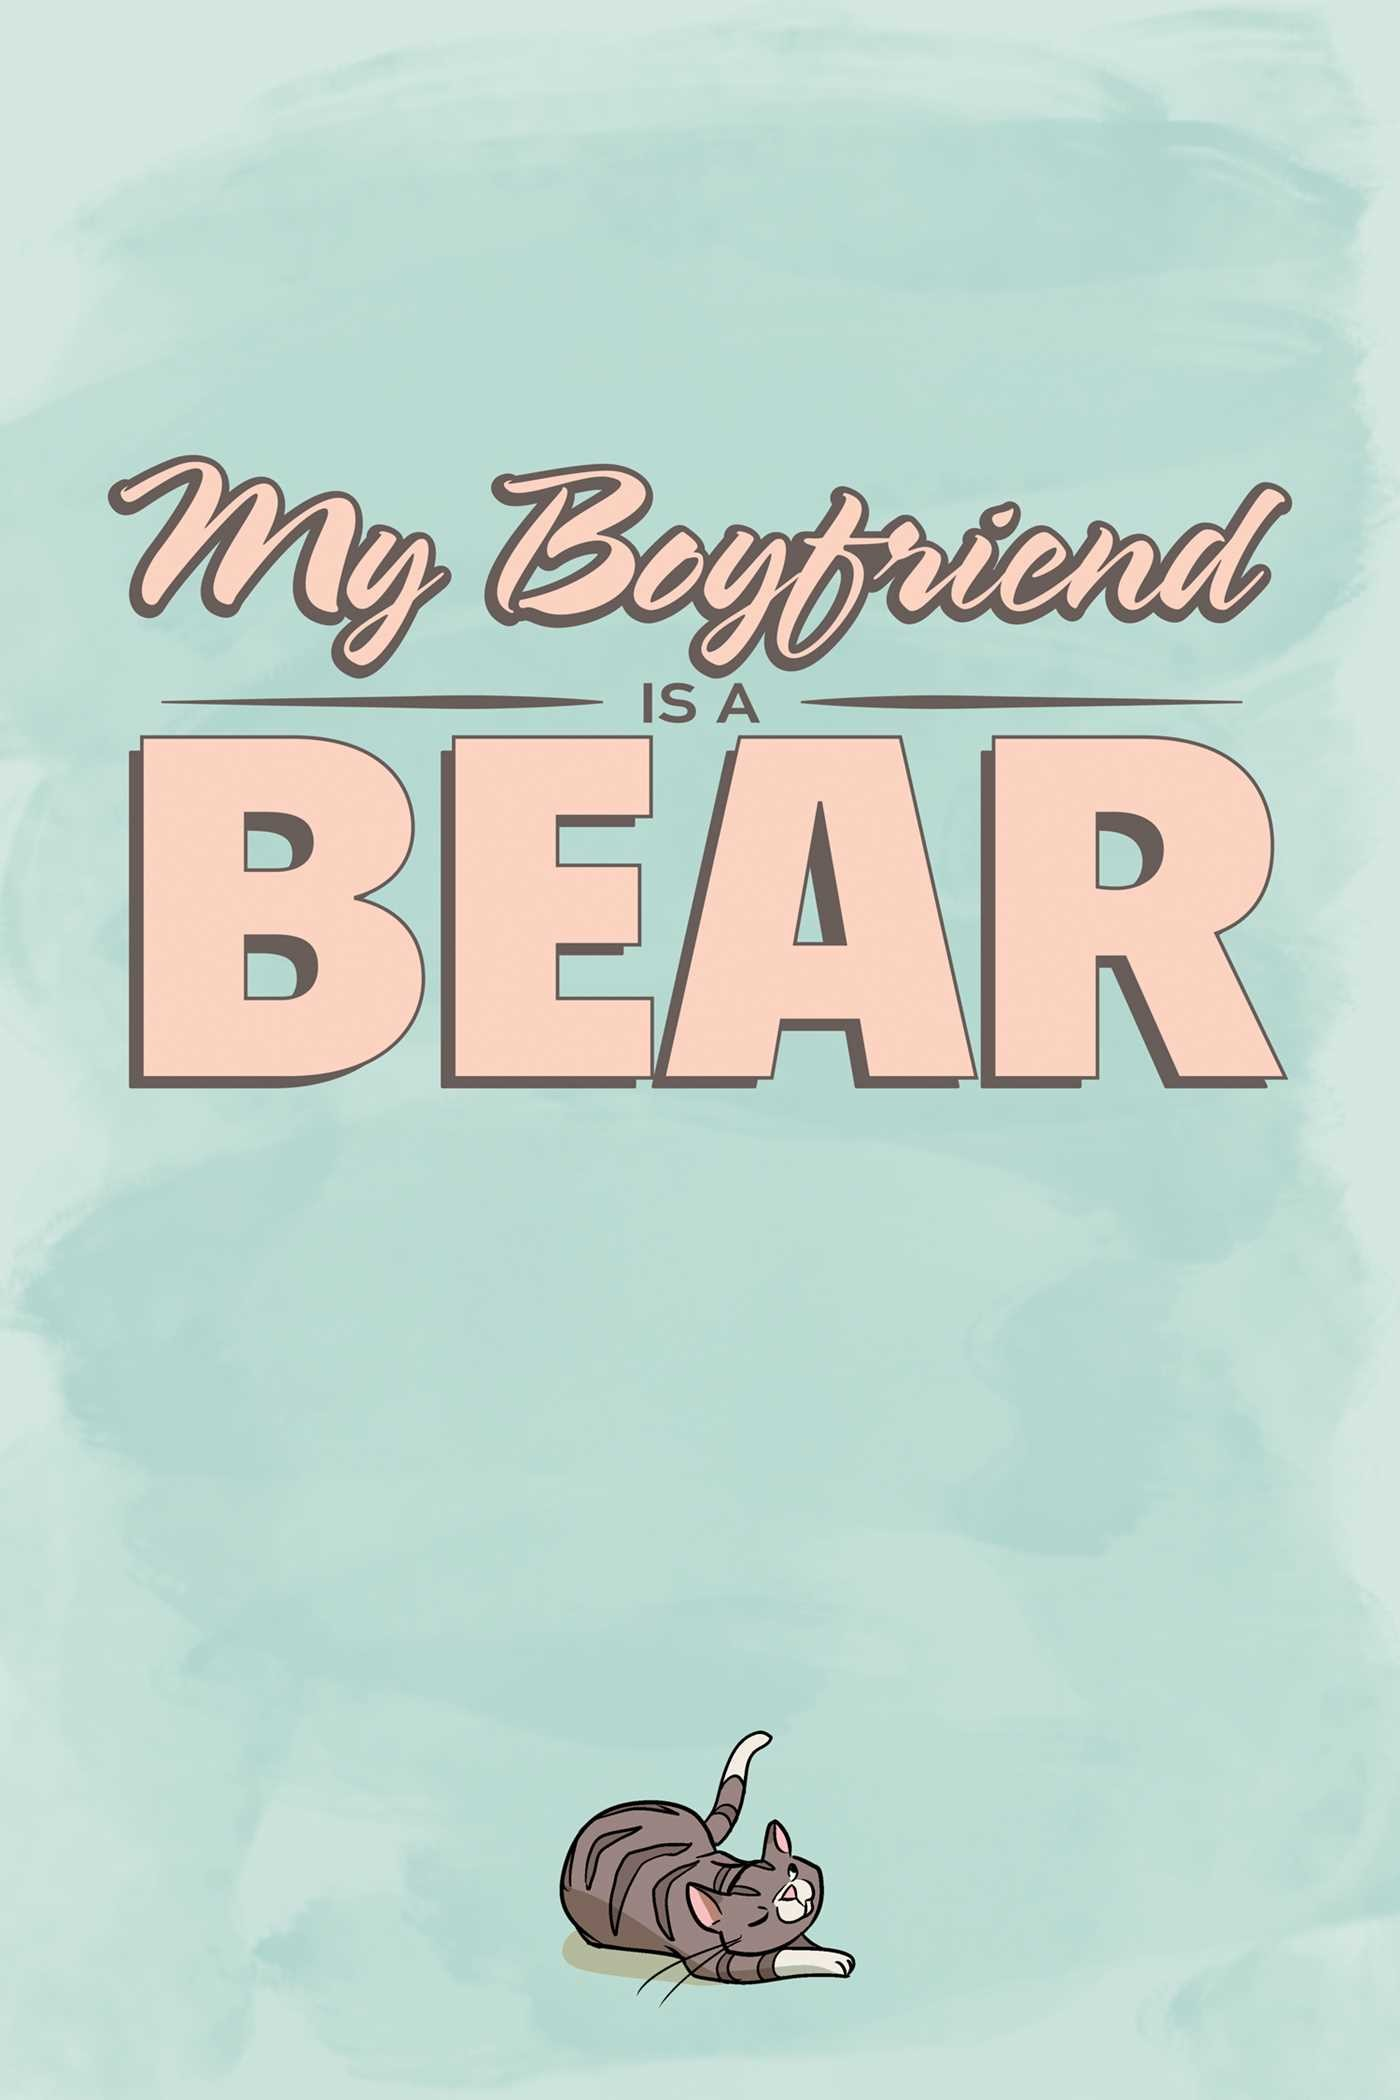 My boyfriend is a bear 9781620104873.in01